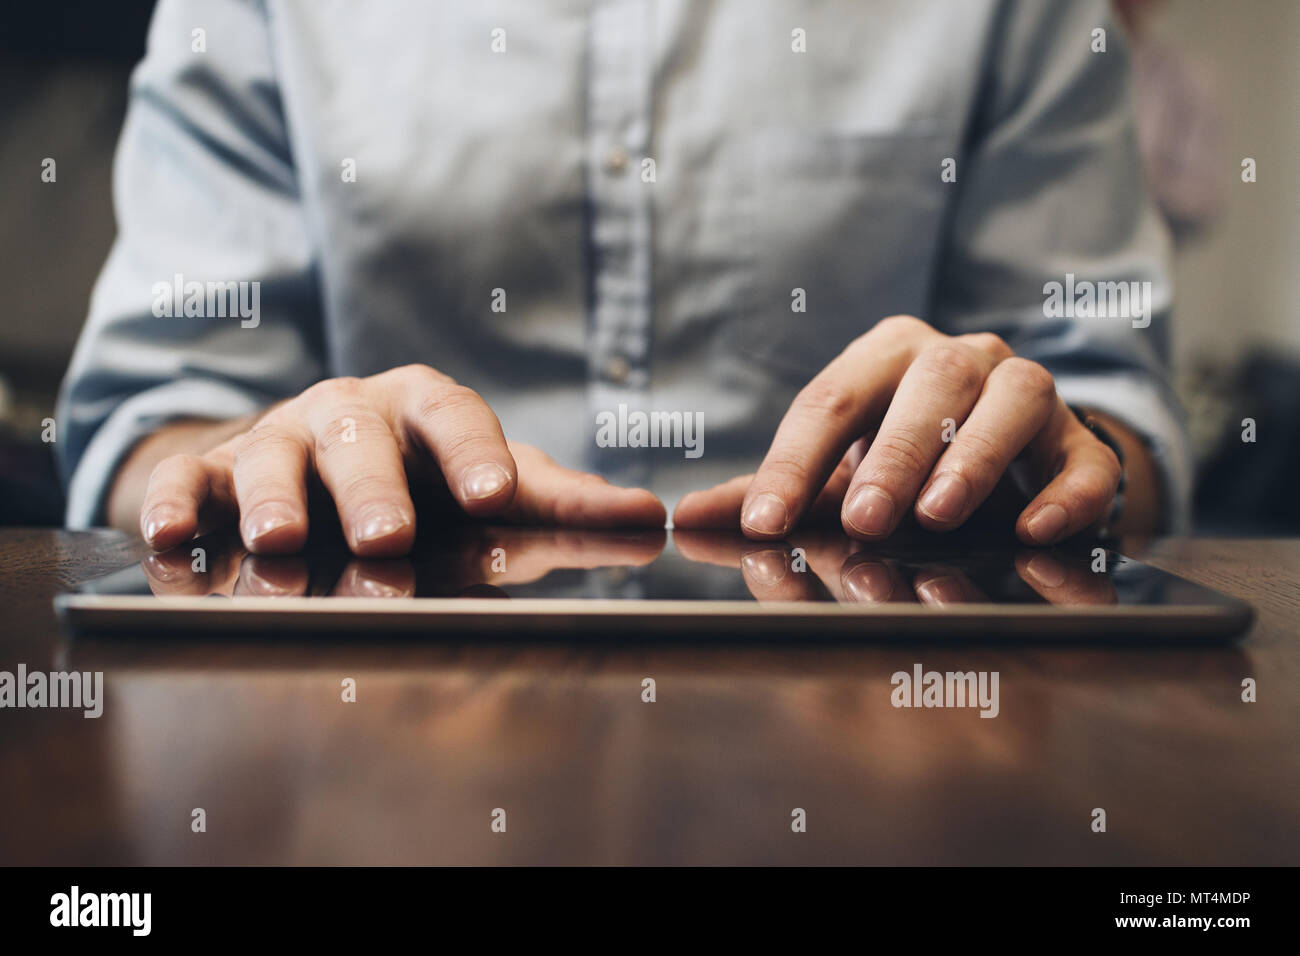 Close up view on male hands typing on screen modern tablet. Computer touch pad on wooden table - Stock Image